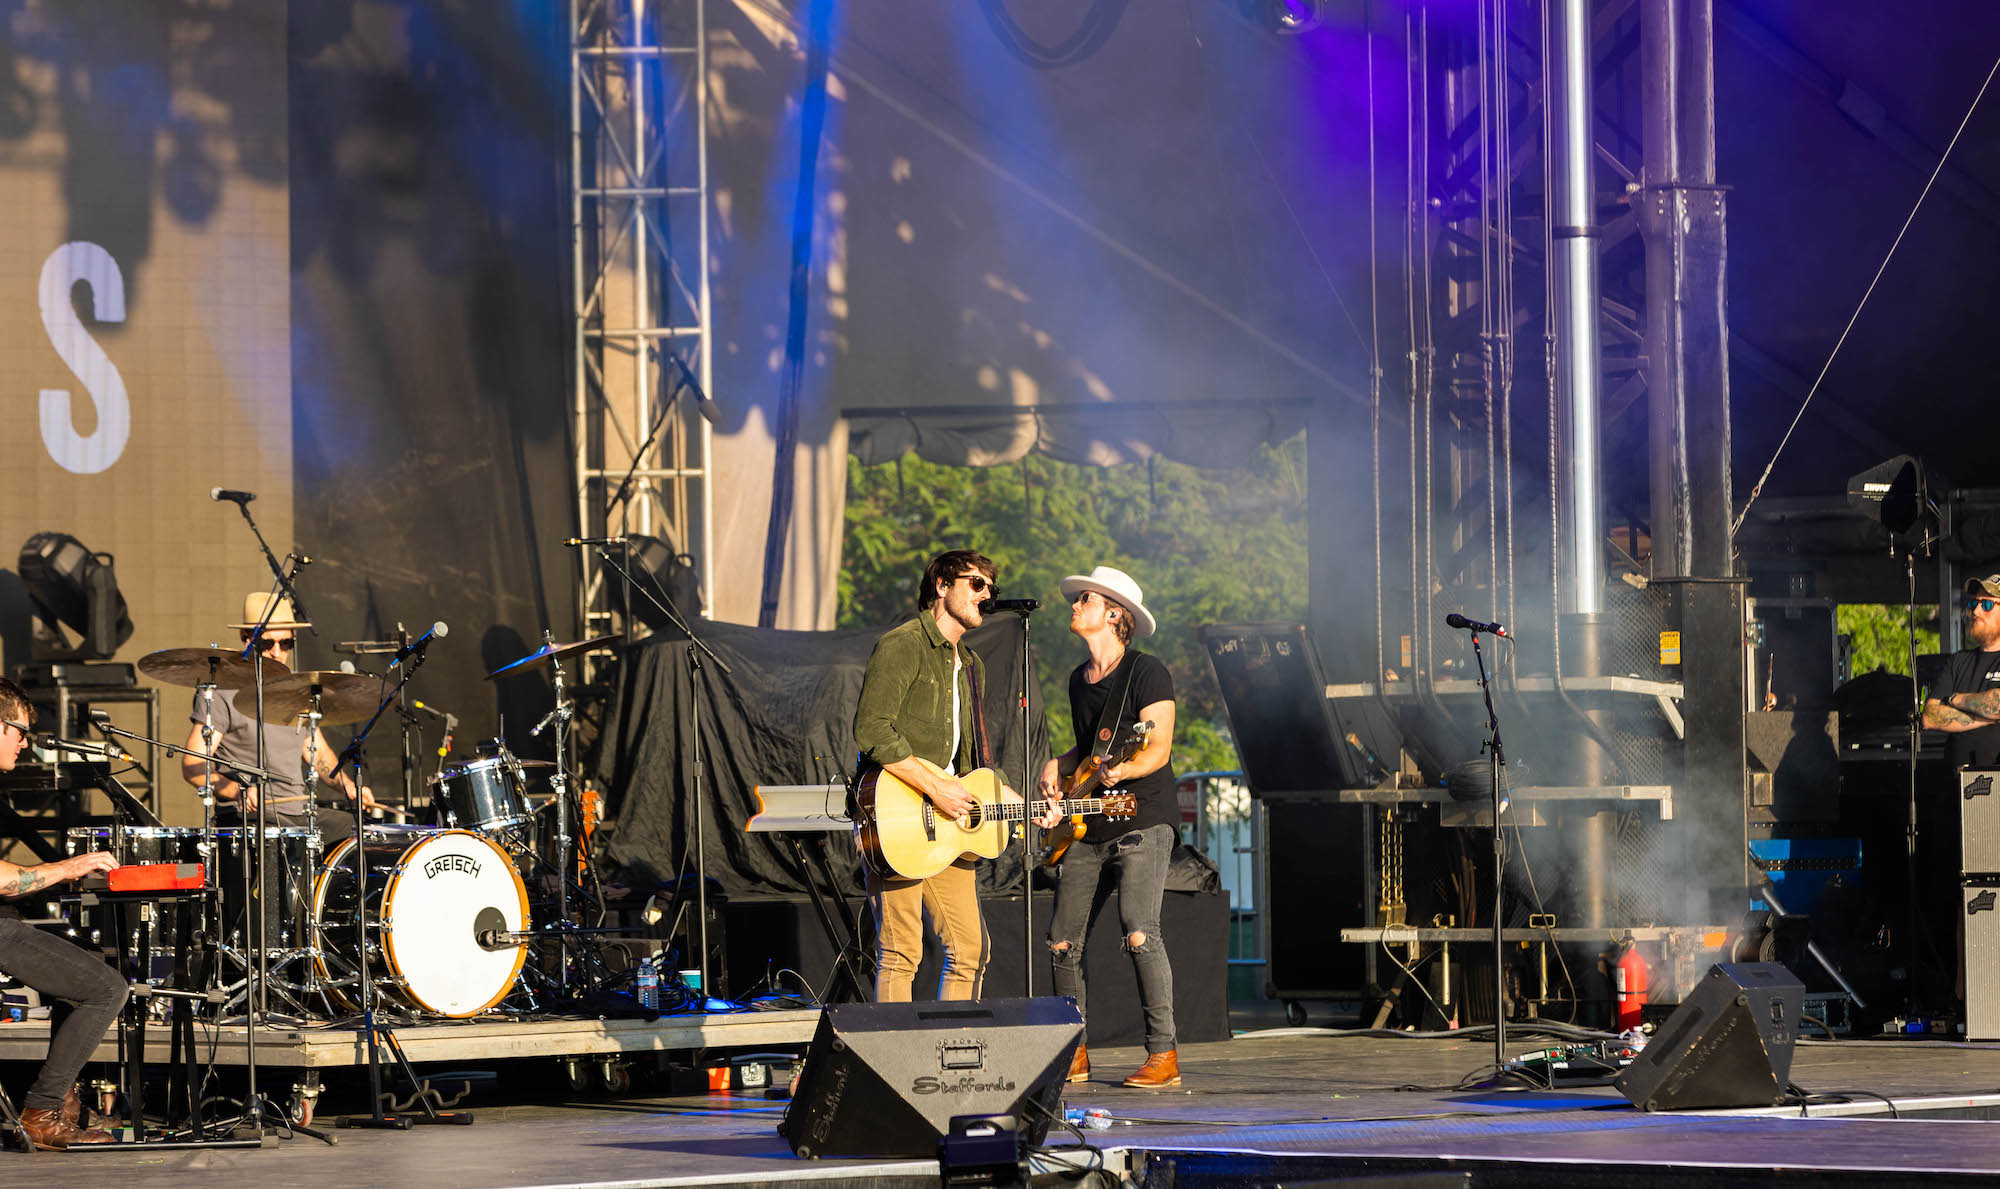 Morgan Evans - Windy City Smokeout - Chicago, IL - 07/9/2021 - Photo © 2021 by: Frank Griseta